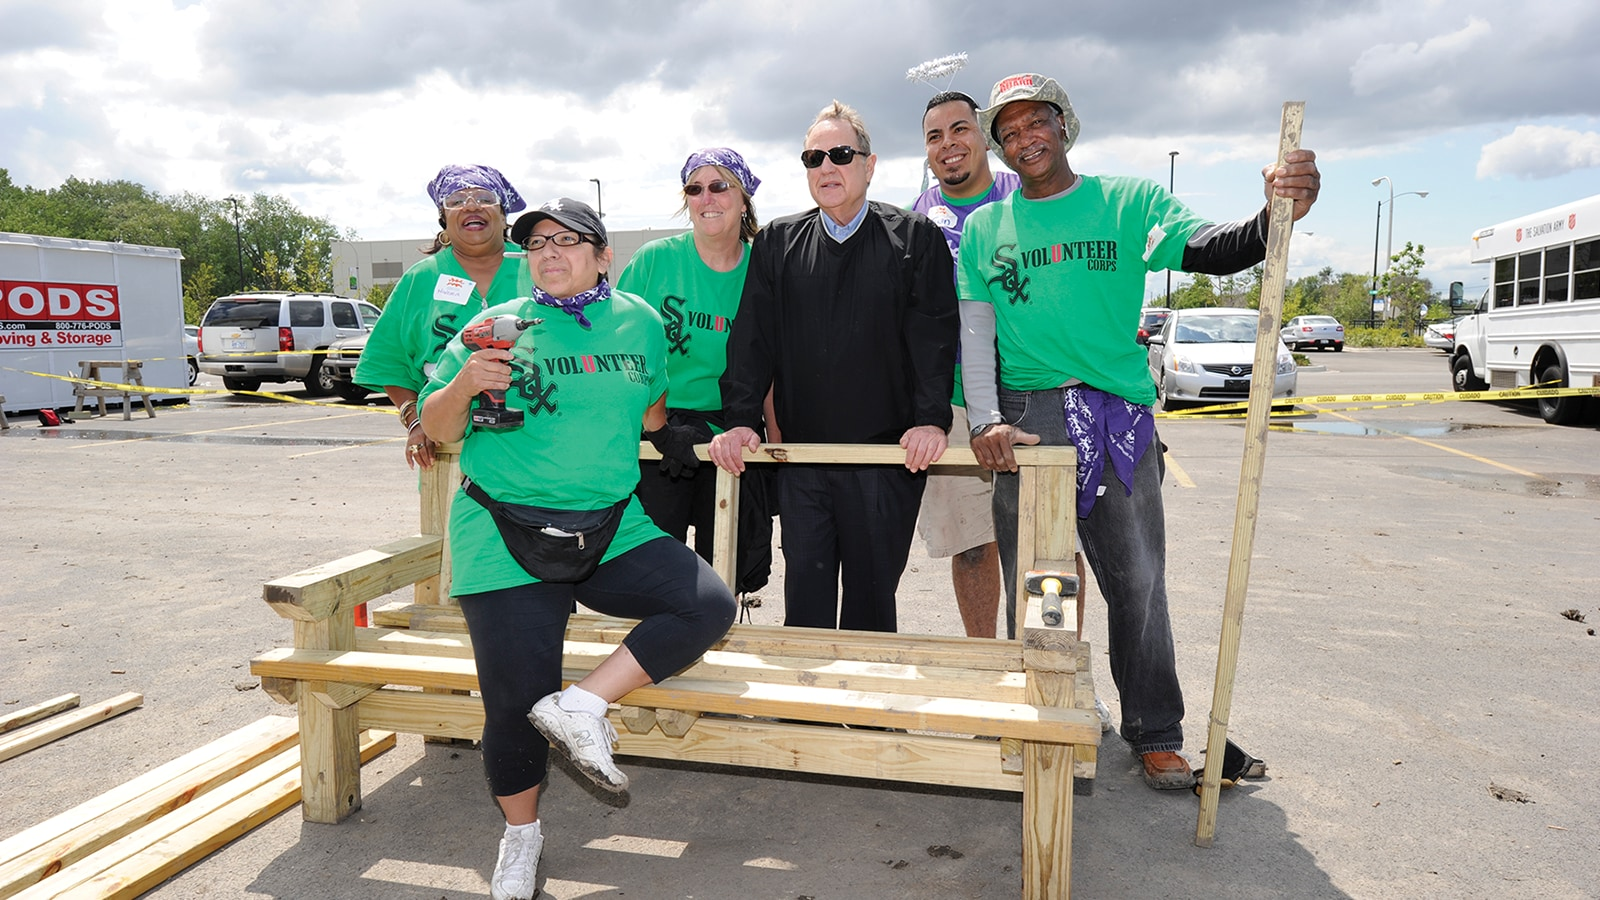 Jerry Reinsdorf joined more than 200 Volunteer Corps members during a 2012 KaBOOM! playground build in Chicago's West Pullman neighborhood. The White Sox Volunteer Corps has engaged more than 5,000 fans and served nearly 48,000 hours in the community in the last 10 years.